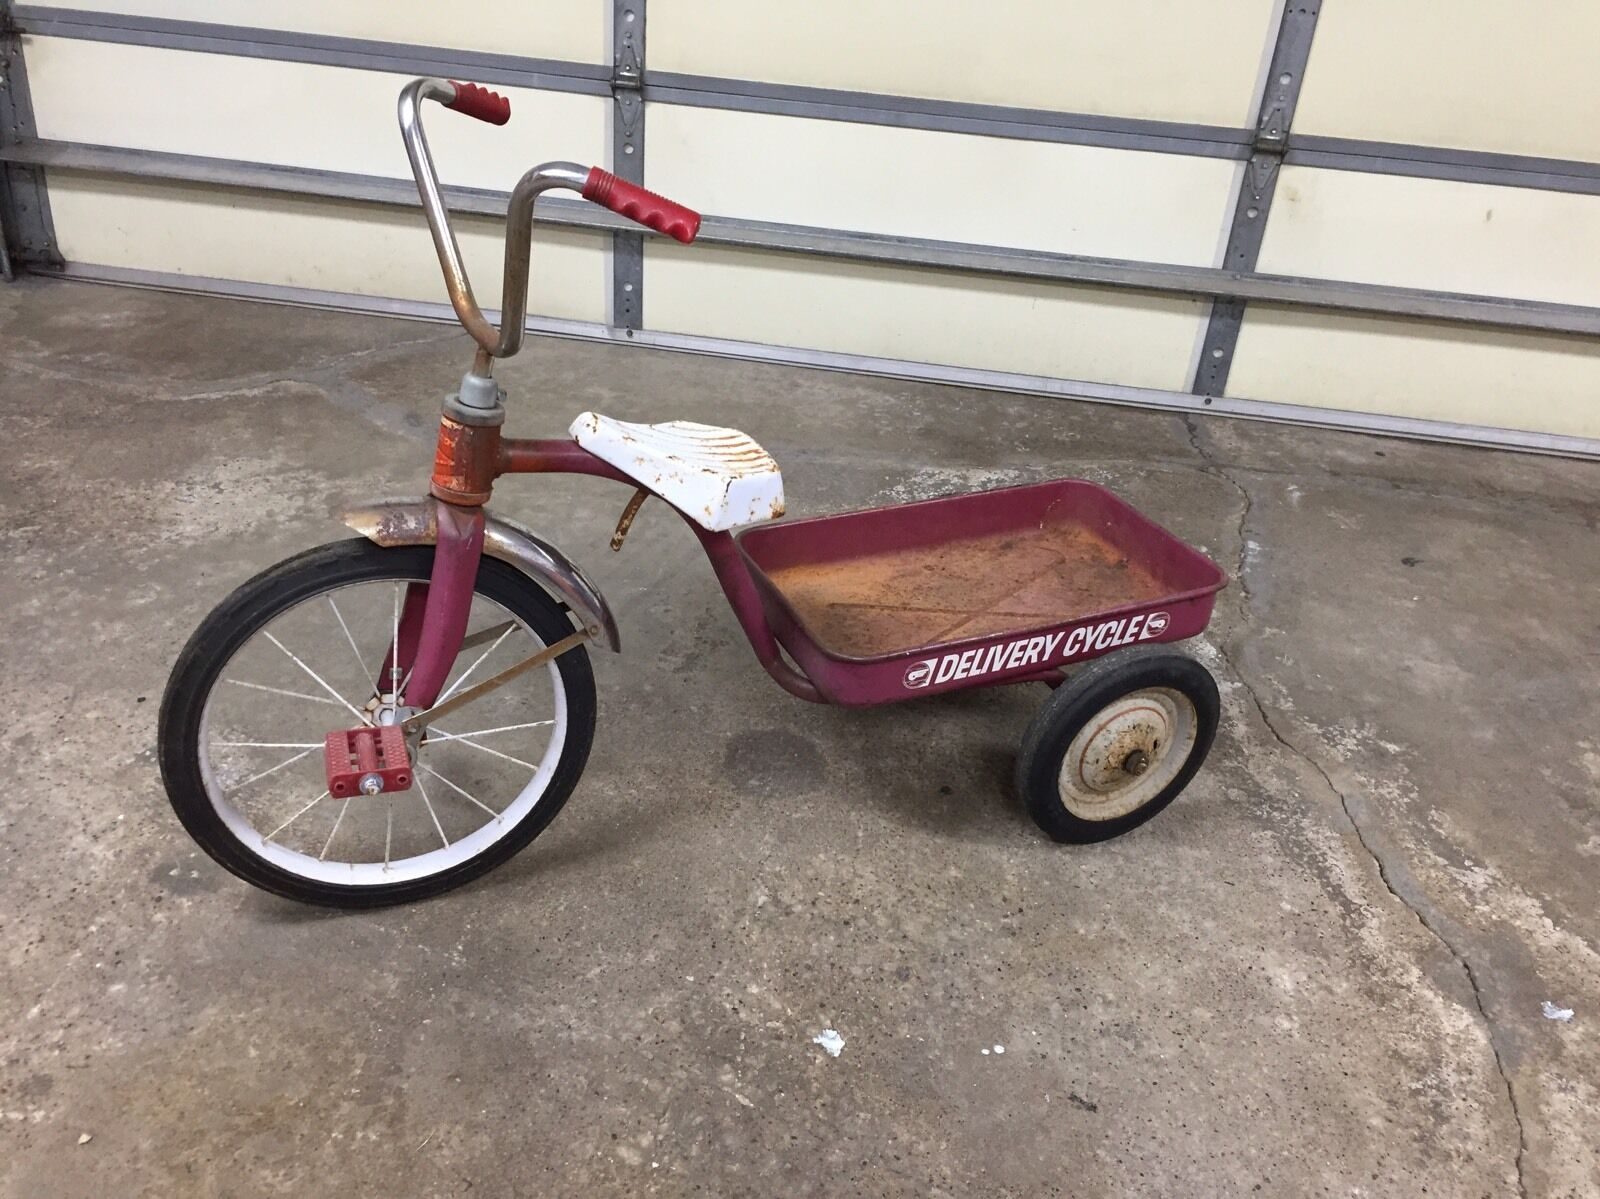 Vintage Original Garton Delivery Cycle Tricycle Tricycle Tricycle Wagon   Pedal Car - Rare  1df115